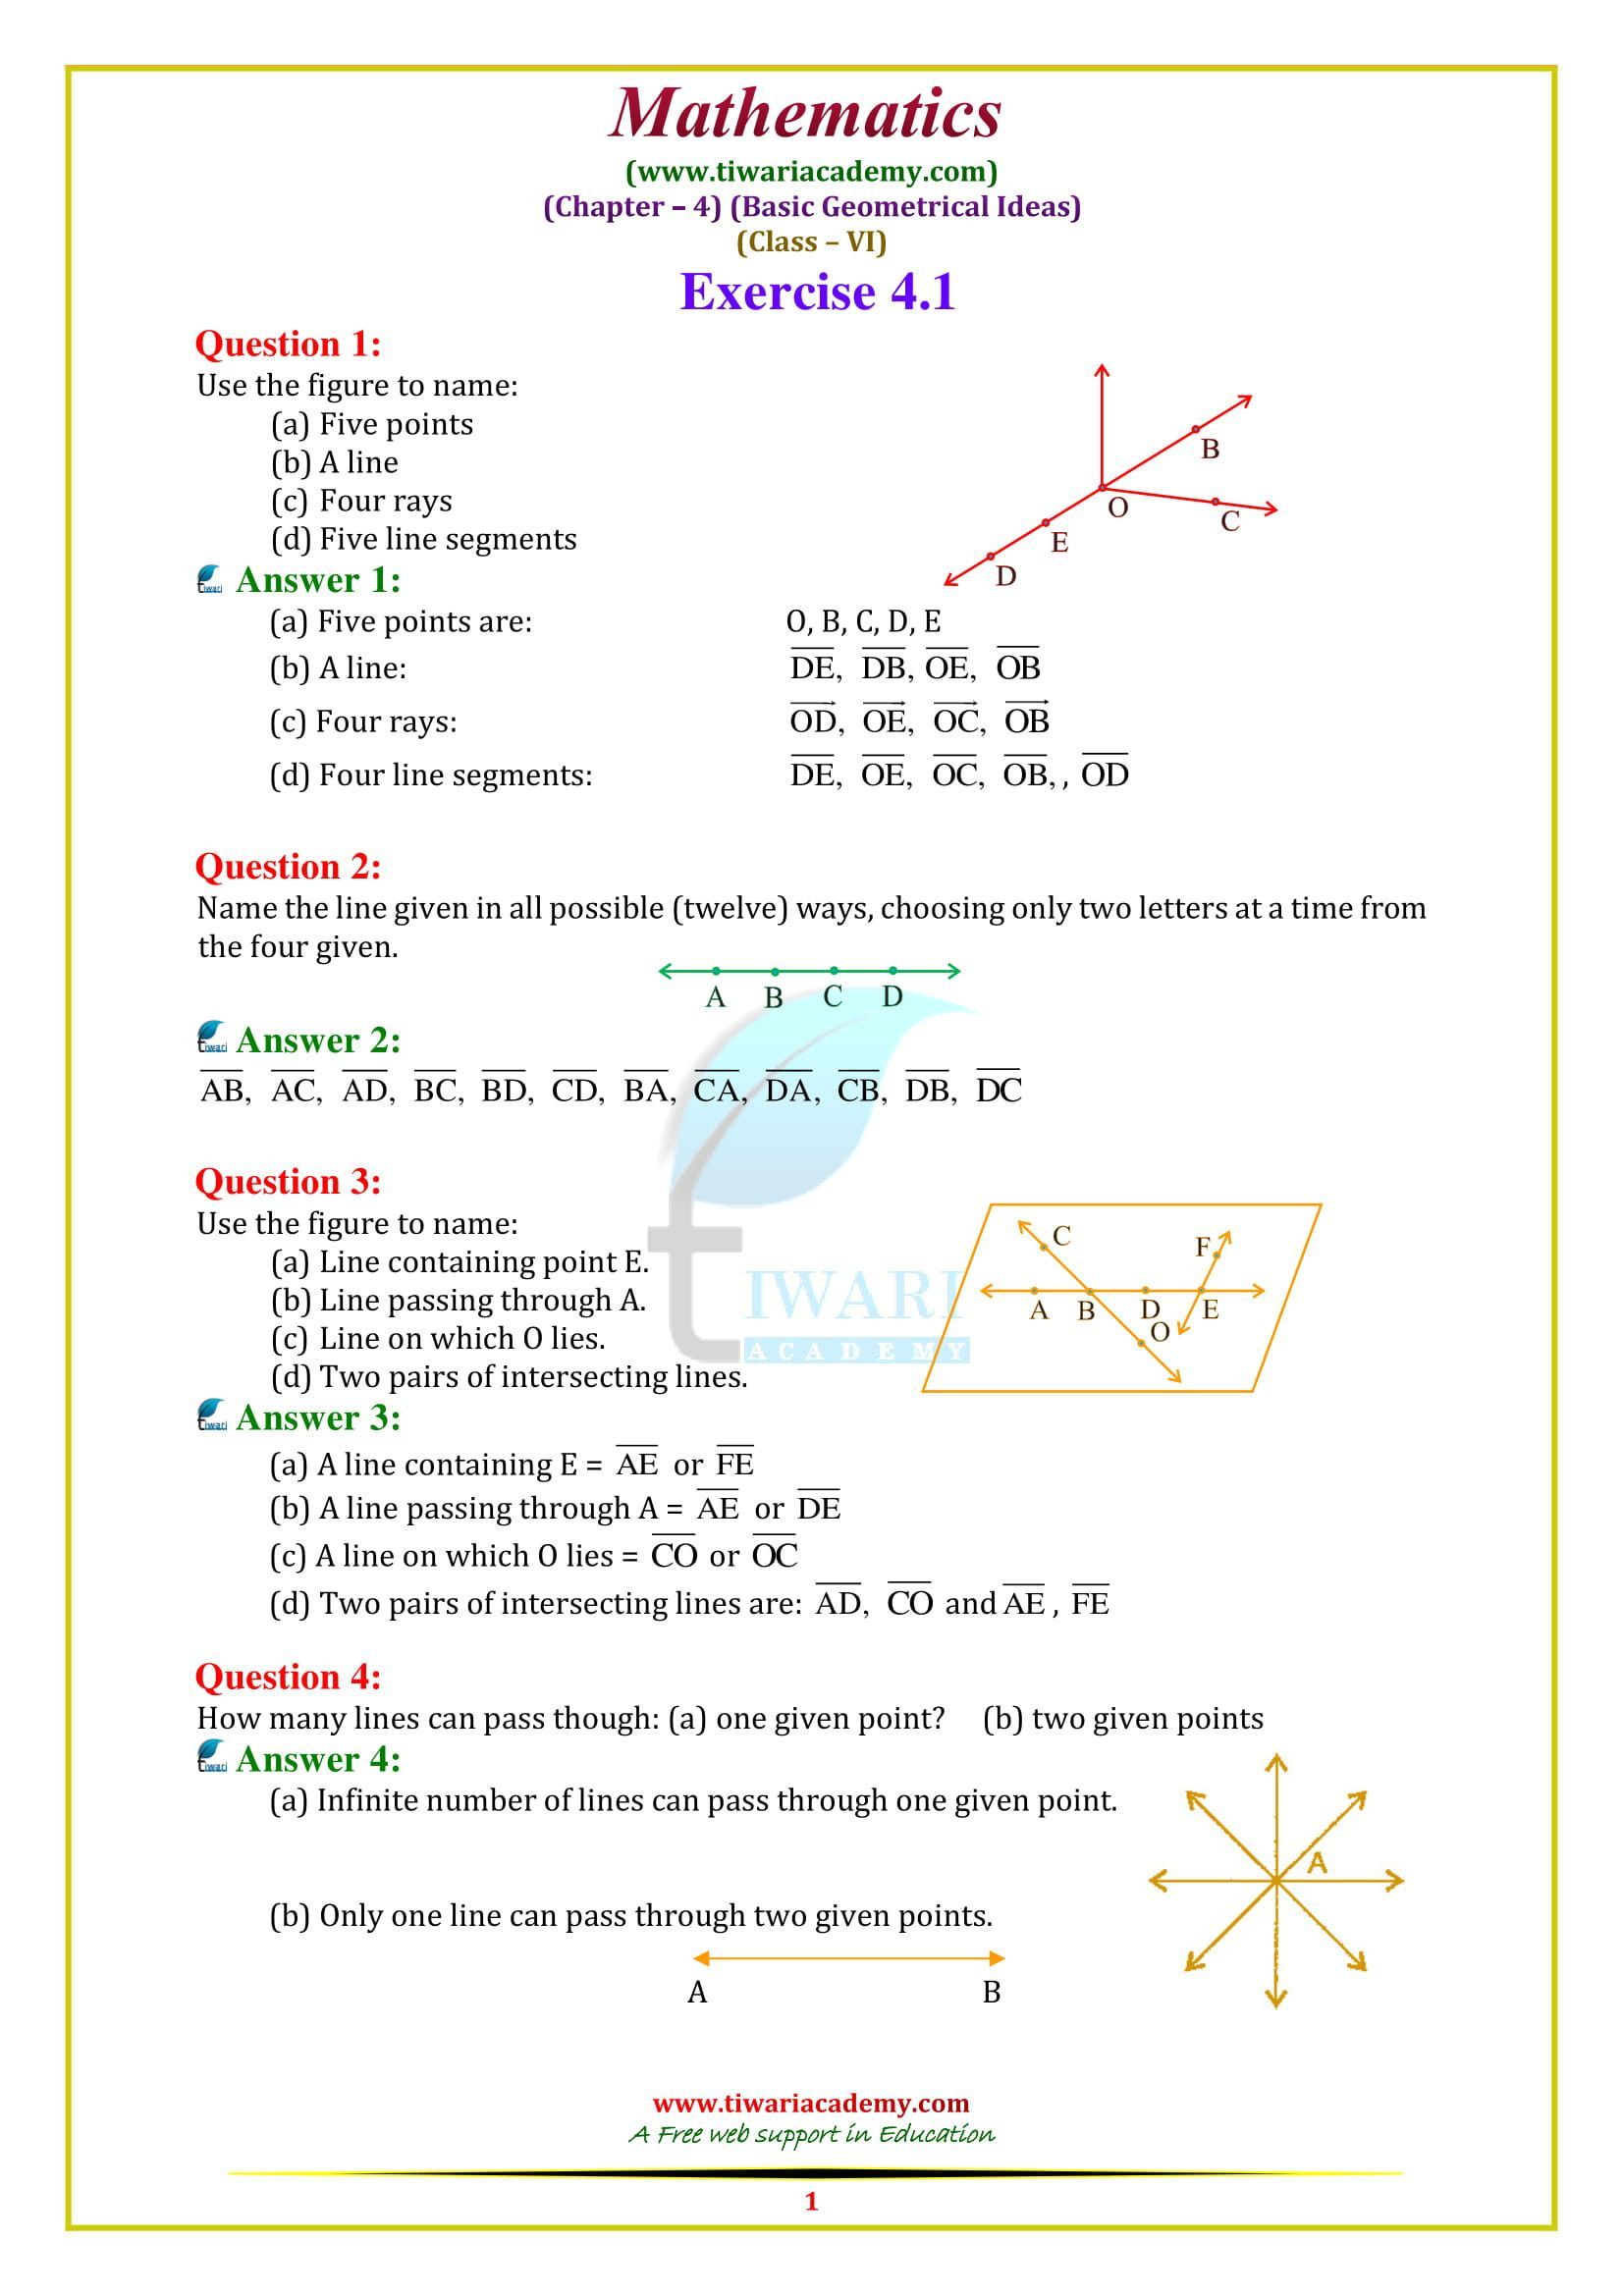 7 Animals Worksheets Printable Maths Worksheets For Class 6 With Solution Work Grade 6 Math Worksheets Free Printable Math Worksheets Printable Math Worksheets